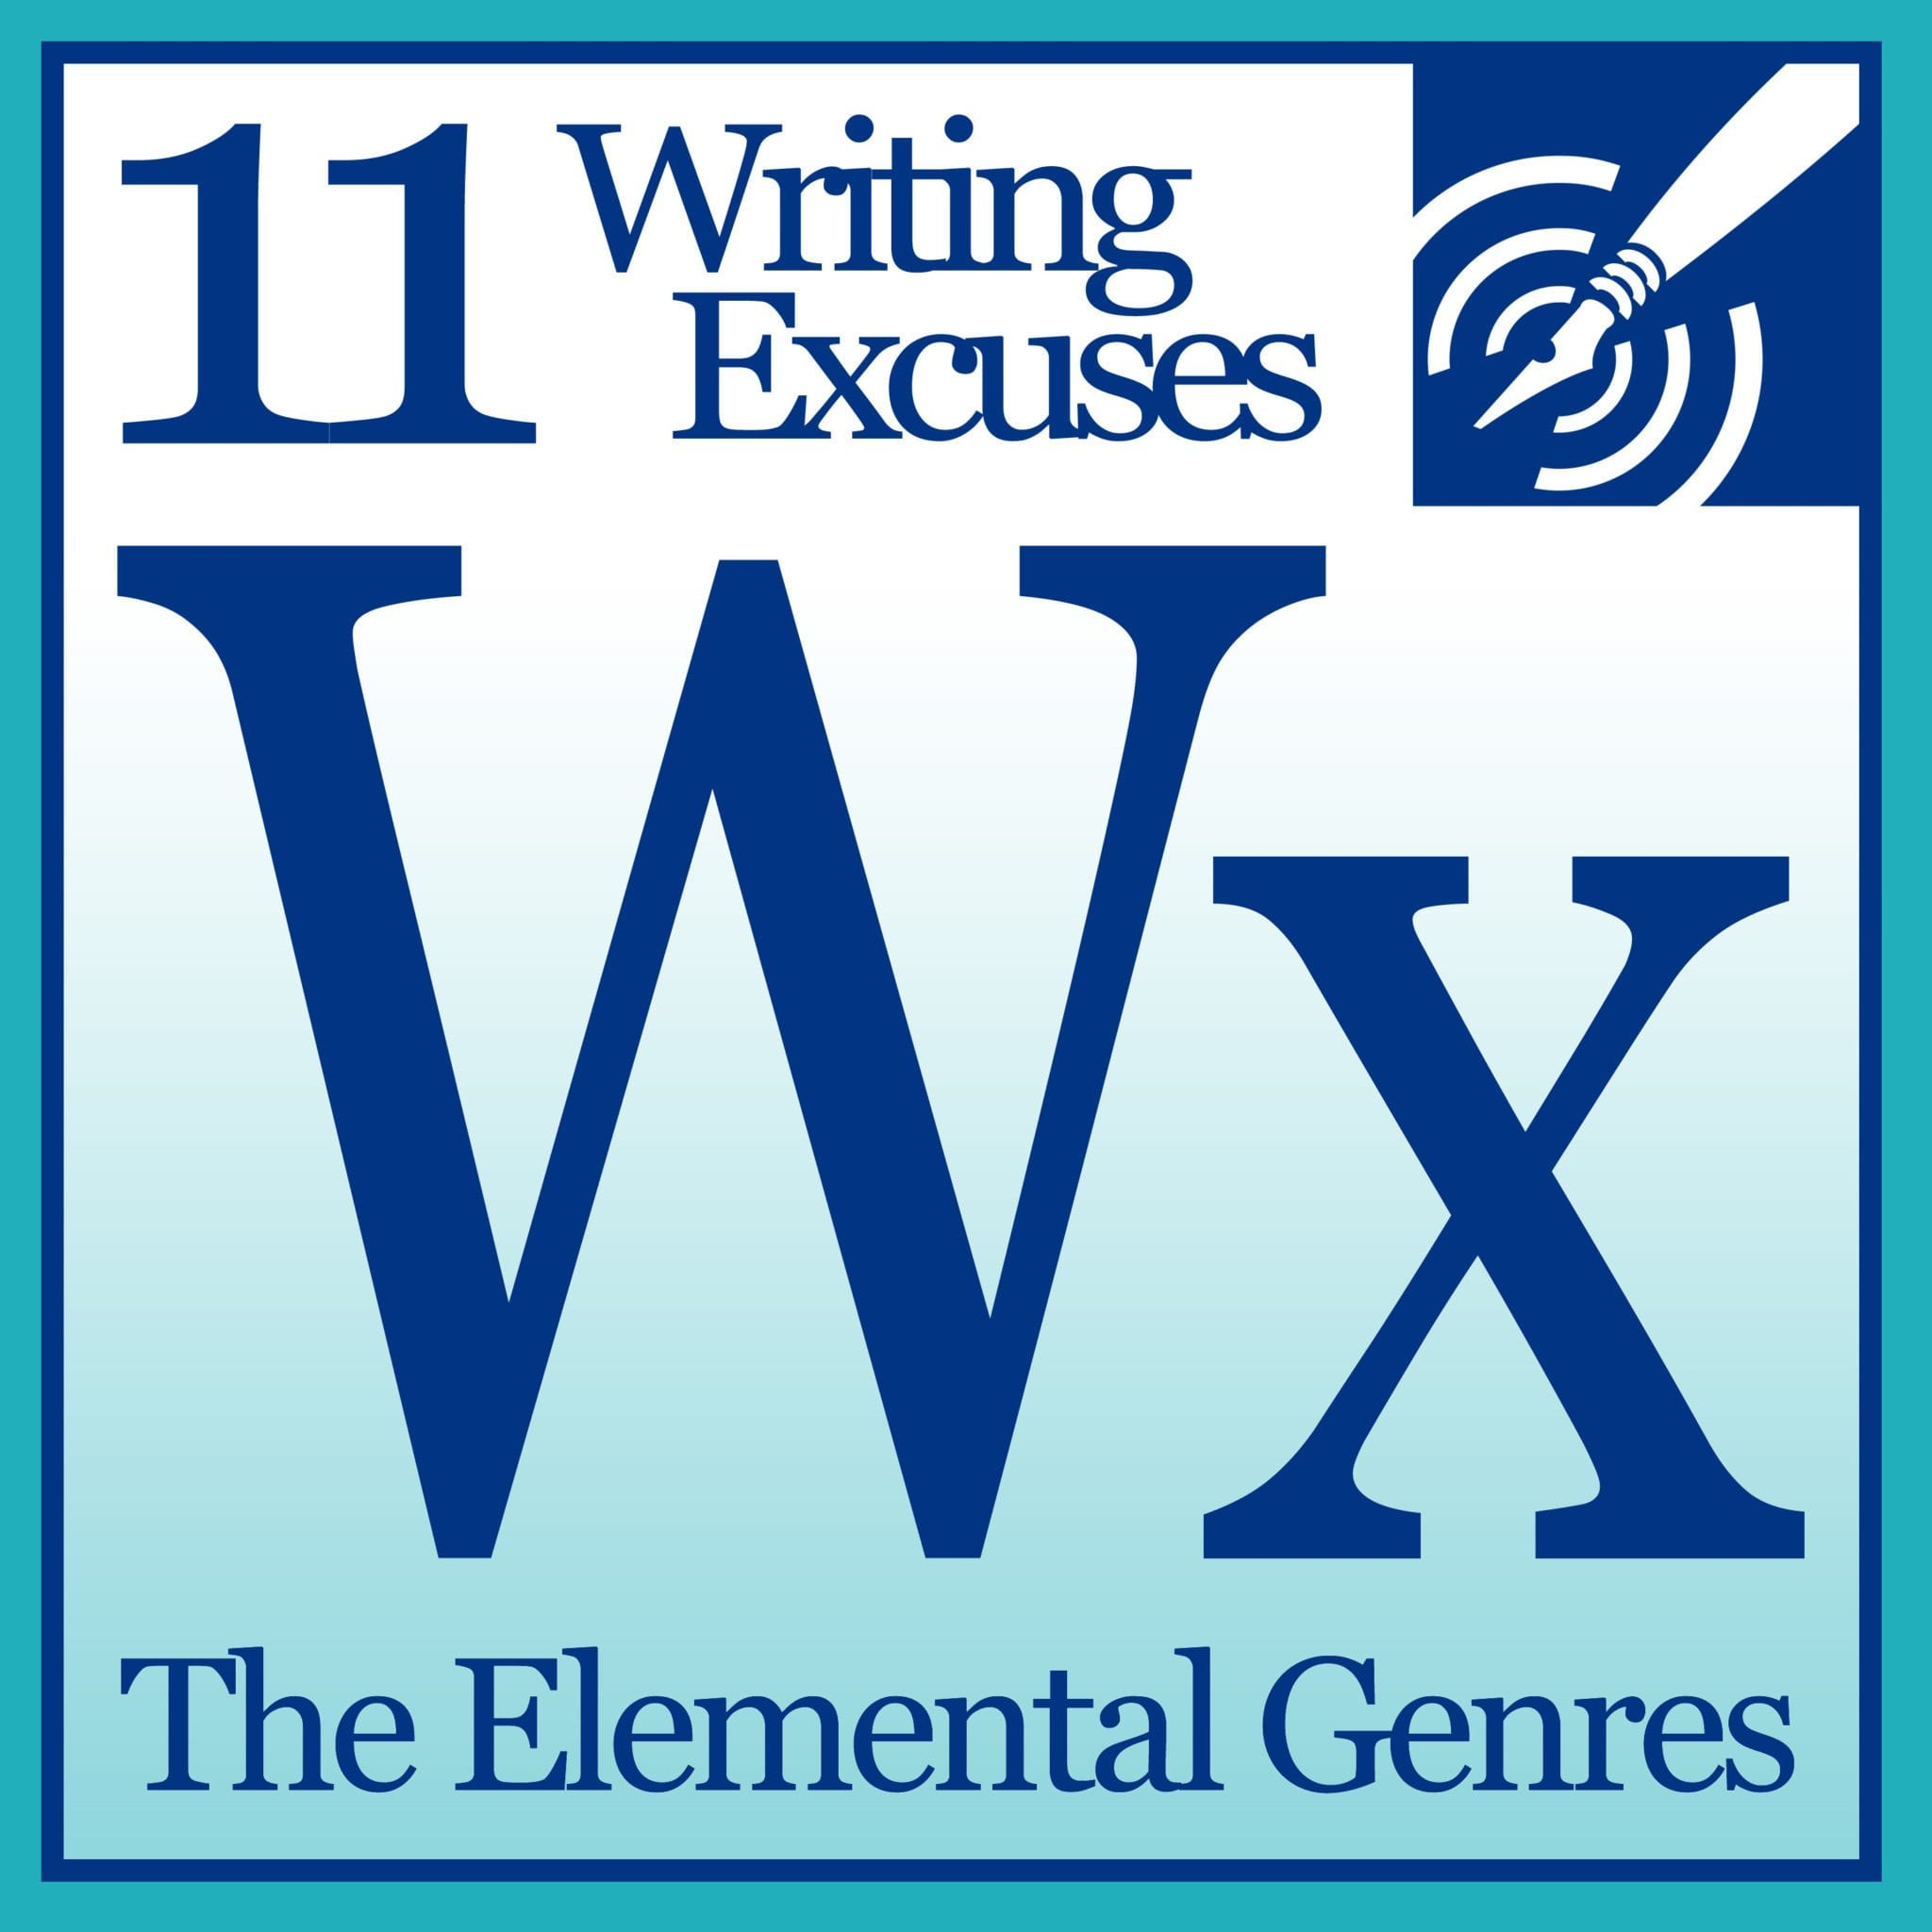 writing excuses podcast Writing excuses brandon sanderson, mary robinette kowal, dan wells, and howard tayler  podcast episodes  with special guests bill fawcett and carrie patel bill.